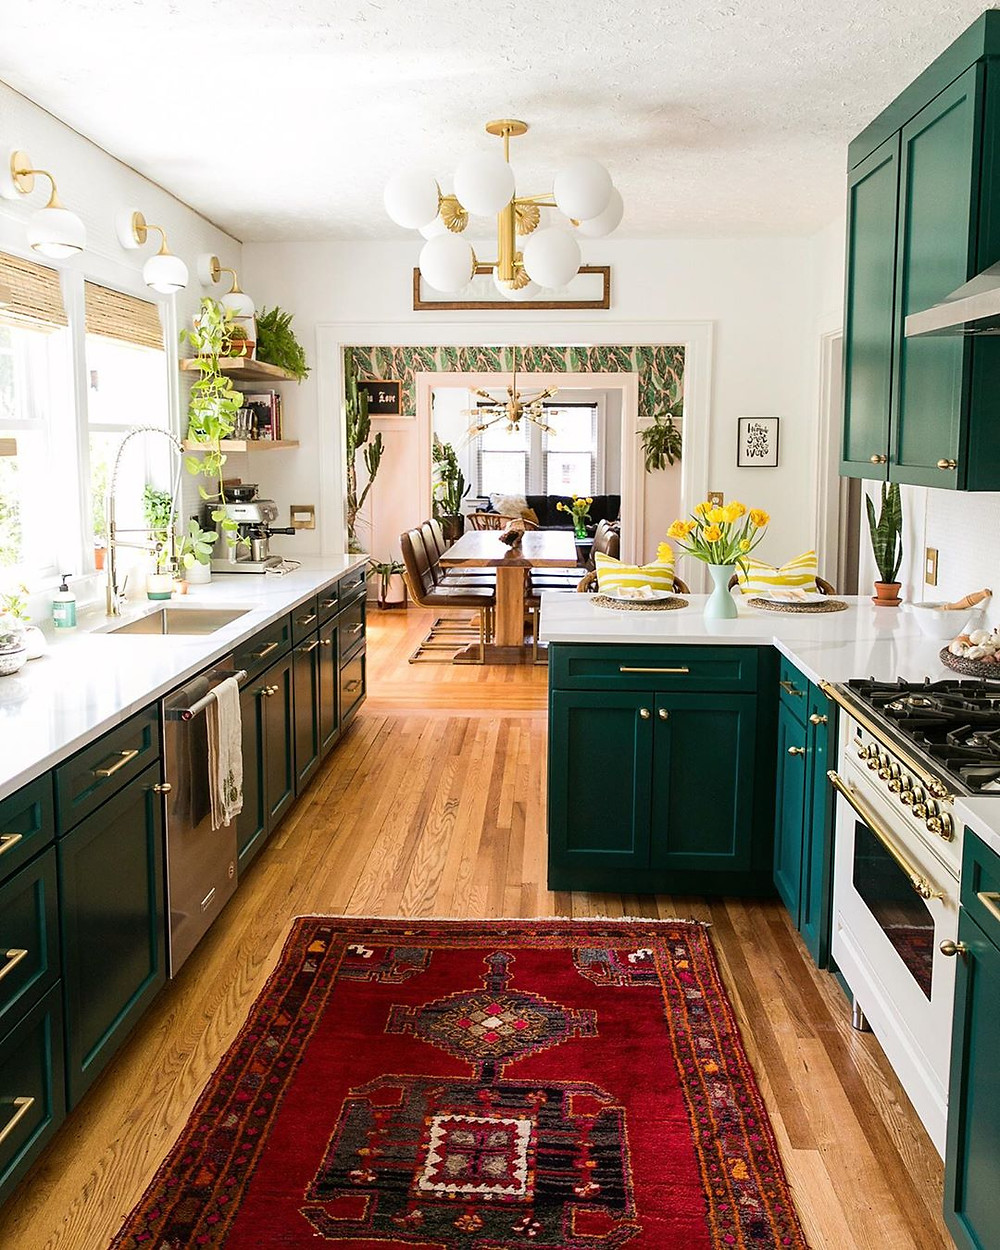 open kitchen space with green cabinets and red rug